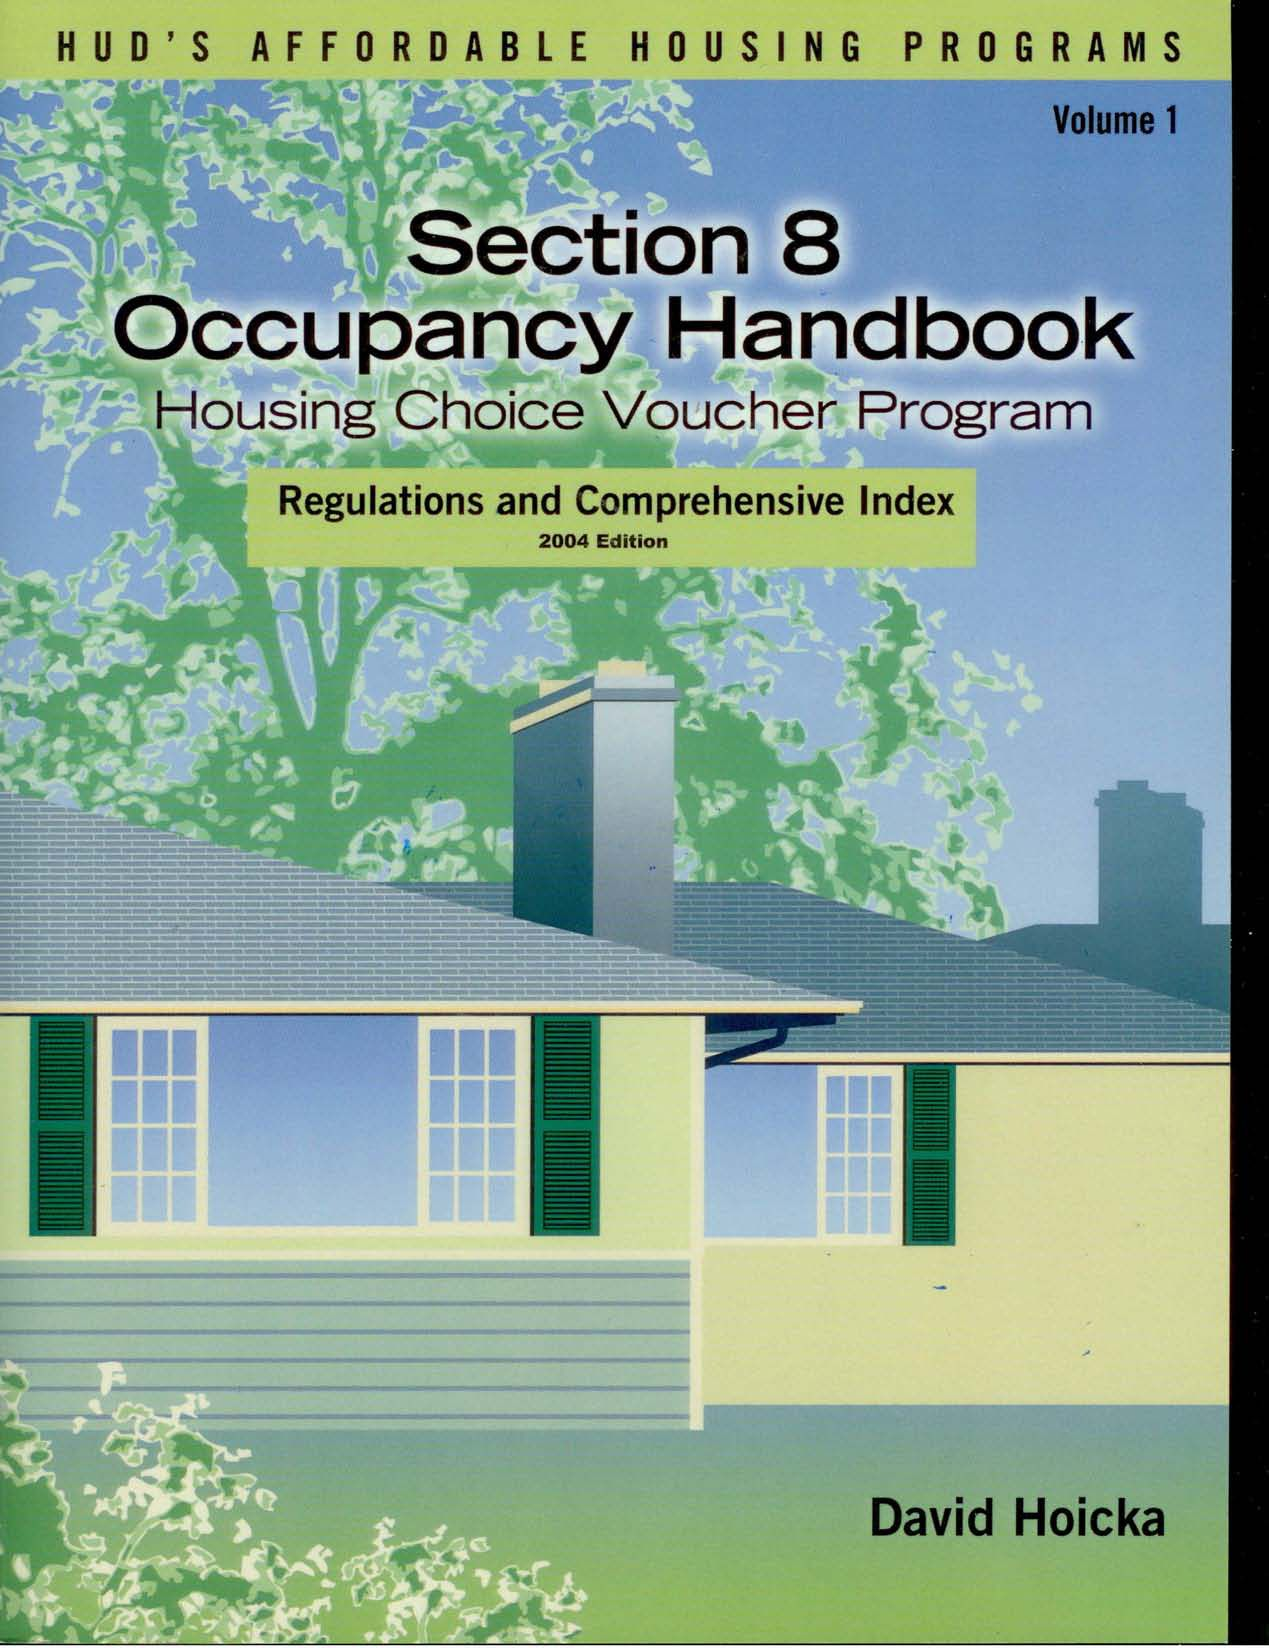 section 8 housing choice voucher handbook and index - david hoicka